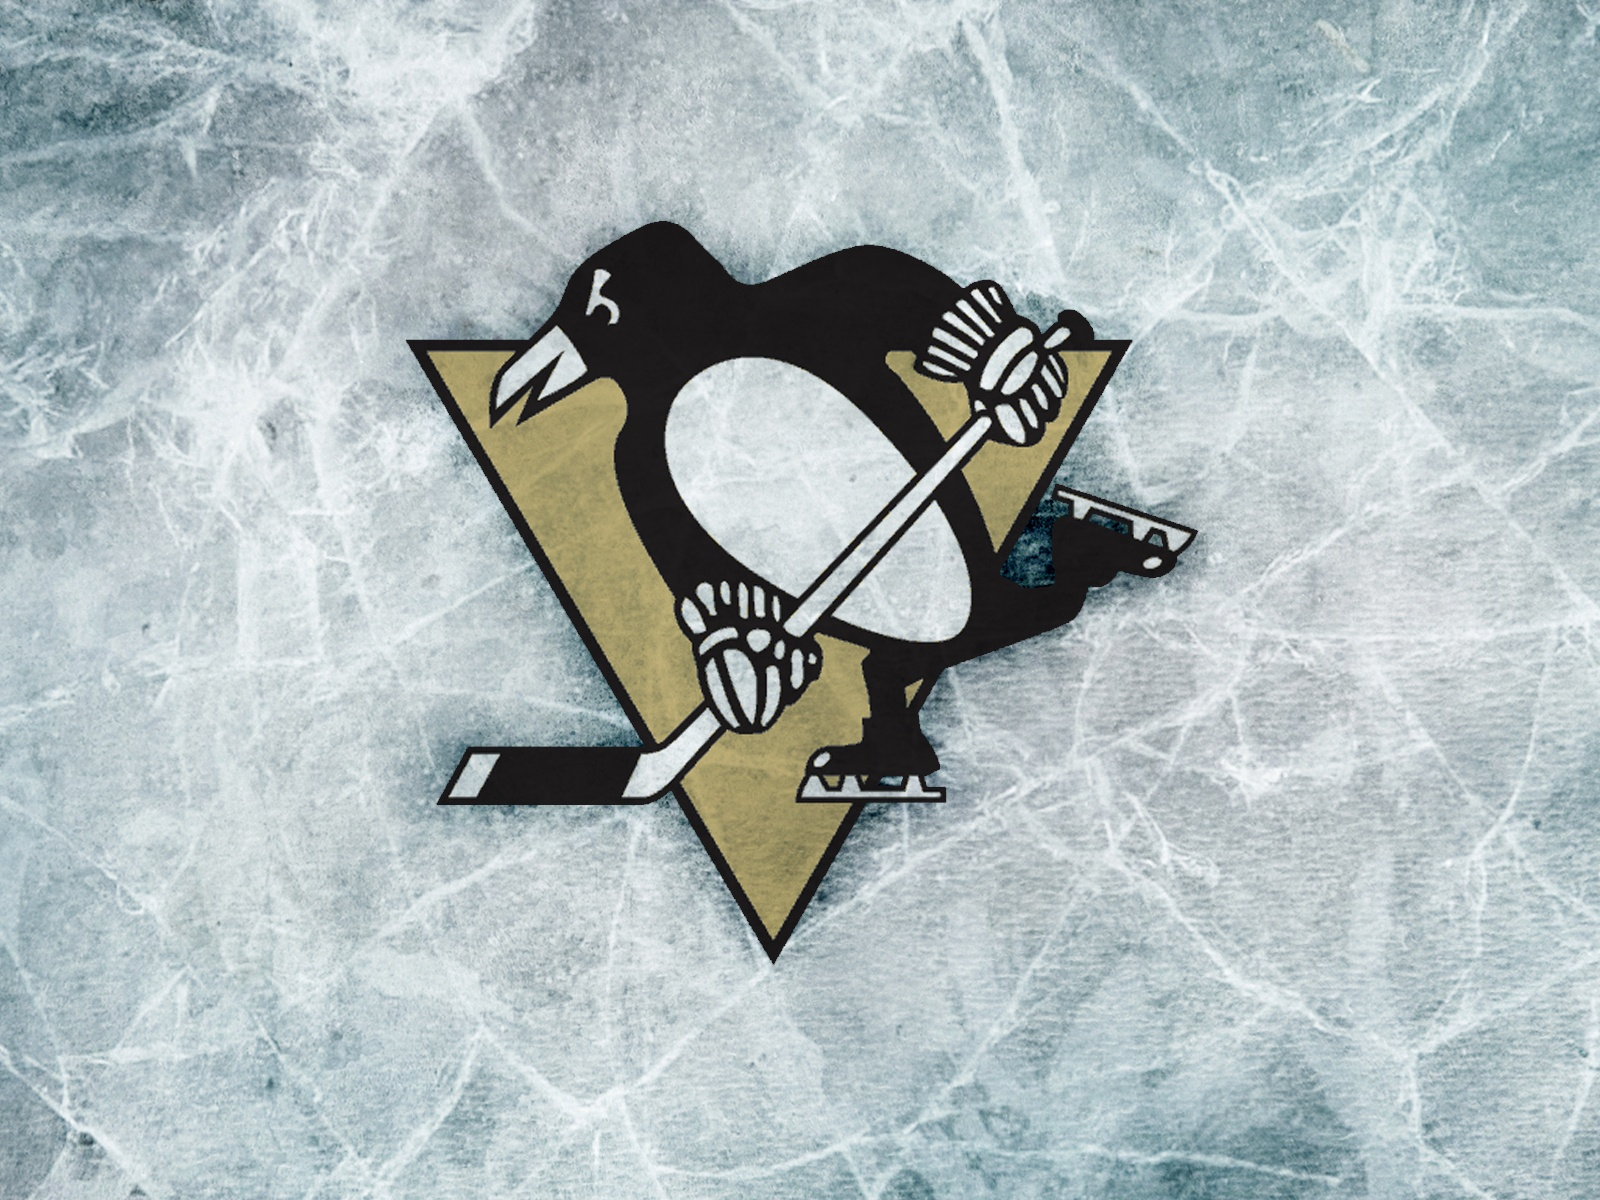 Pittsburgh penguins wallpapers wallpapersafari - Pittsburgh penguins iphone wallpaper ...